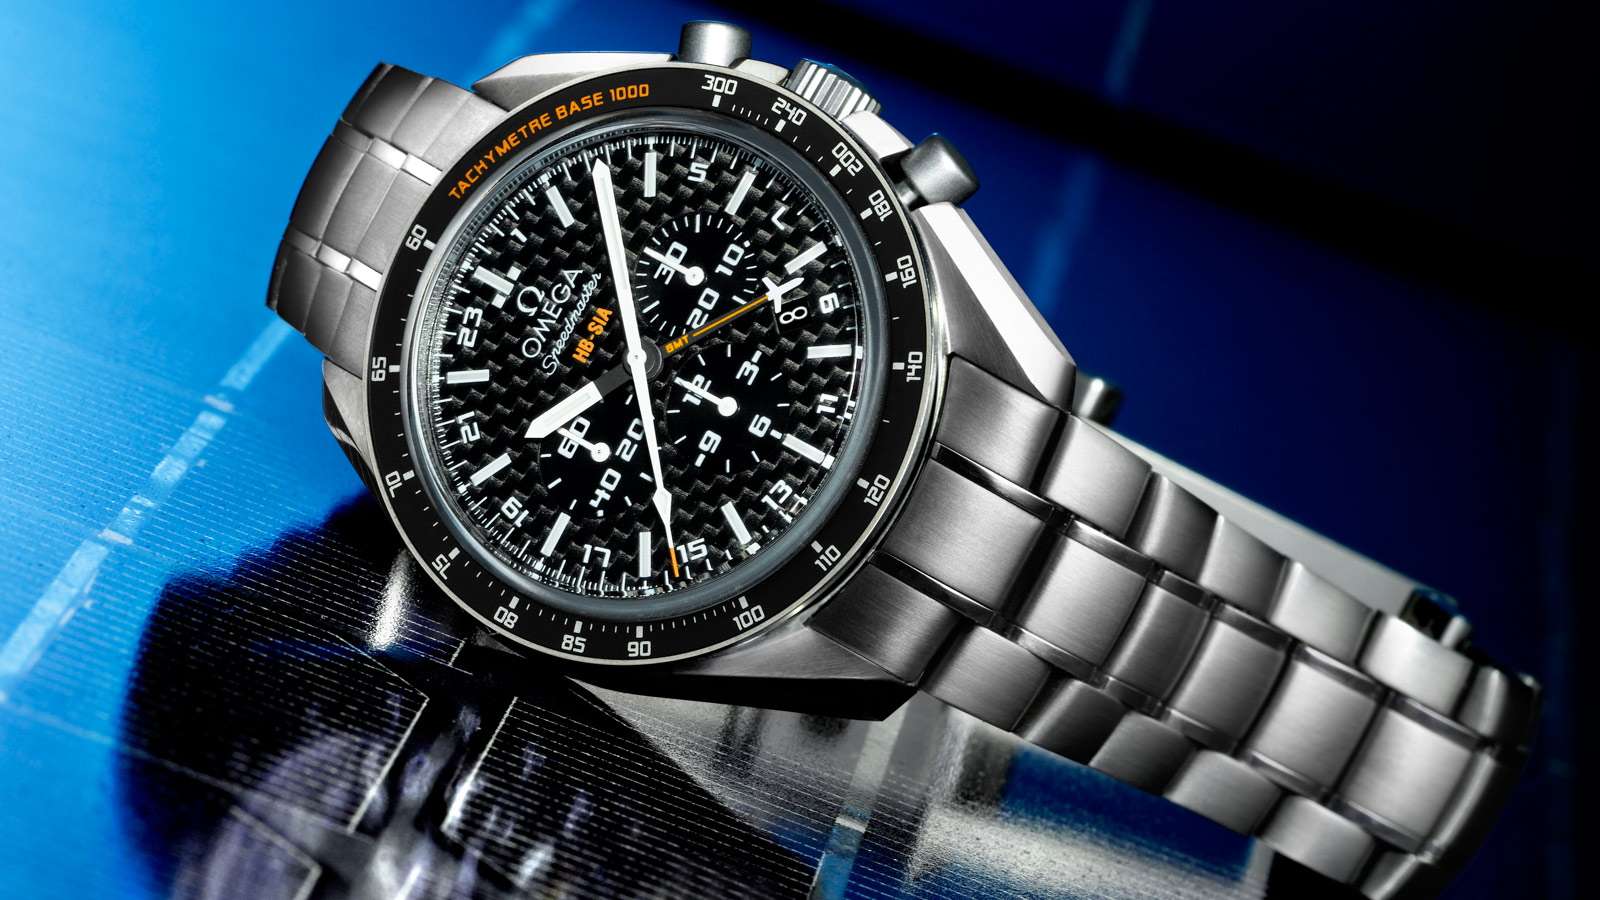 Speedmaster ソーラーインパルス HB‑SIA HB‑SIA Co‑Axial GMT Chronograph Numbered Edition 44.25 mm - 321.90.44.52.01.001 - ビュー 1